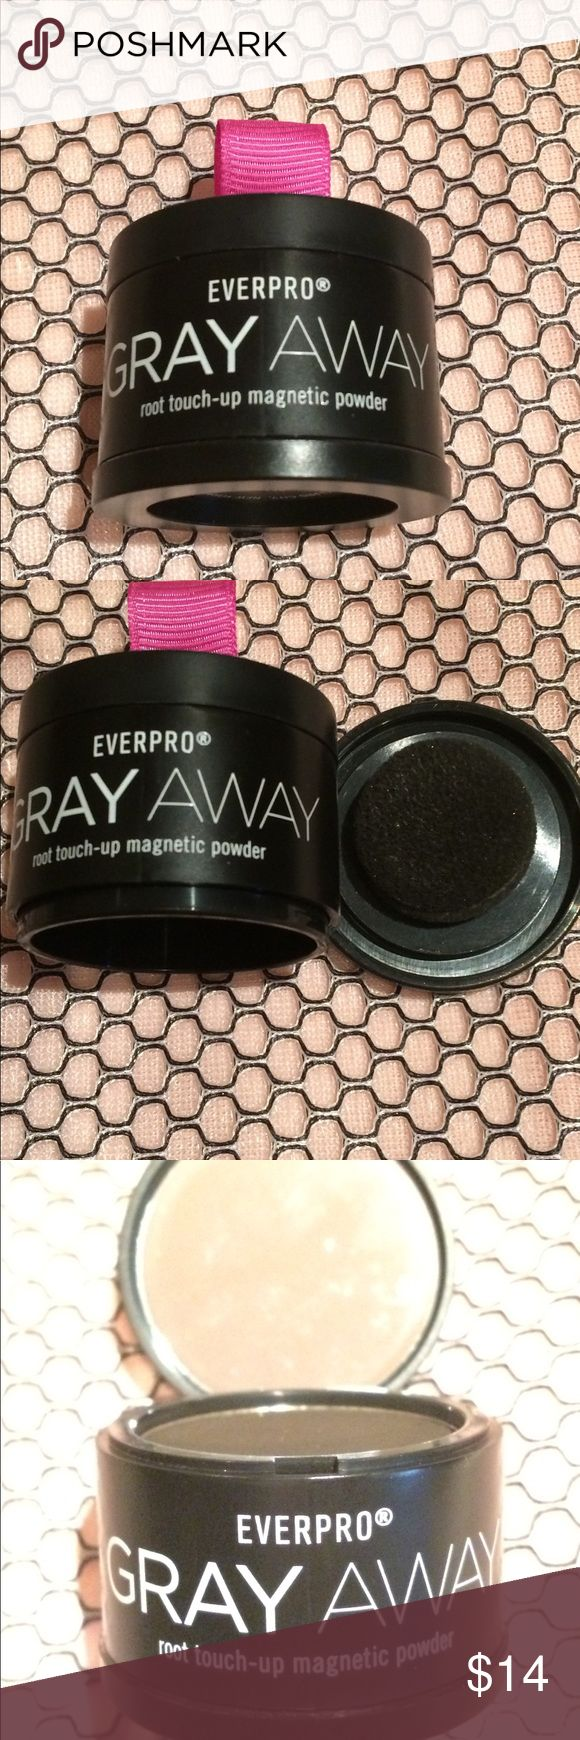 EverPro Gray Away magnetic root touch up powder Perfect for in between coloring is this magnetic root touch up powder made by EverPro. This color is used for dark brown to black hair and seamlessly blends in with all brands of coloring. Comes with a convenient and mirror and a sponge tip applicator. Super easy to use and blends in beautifully. Everpro Makeup Foundation